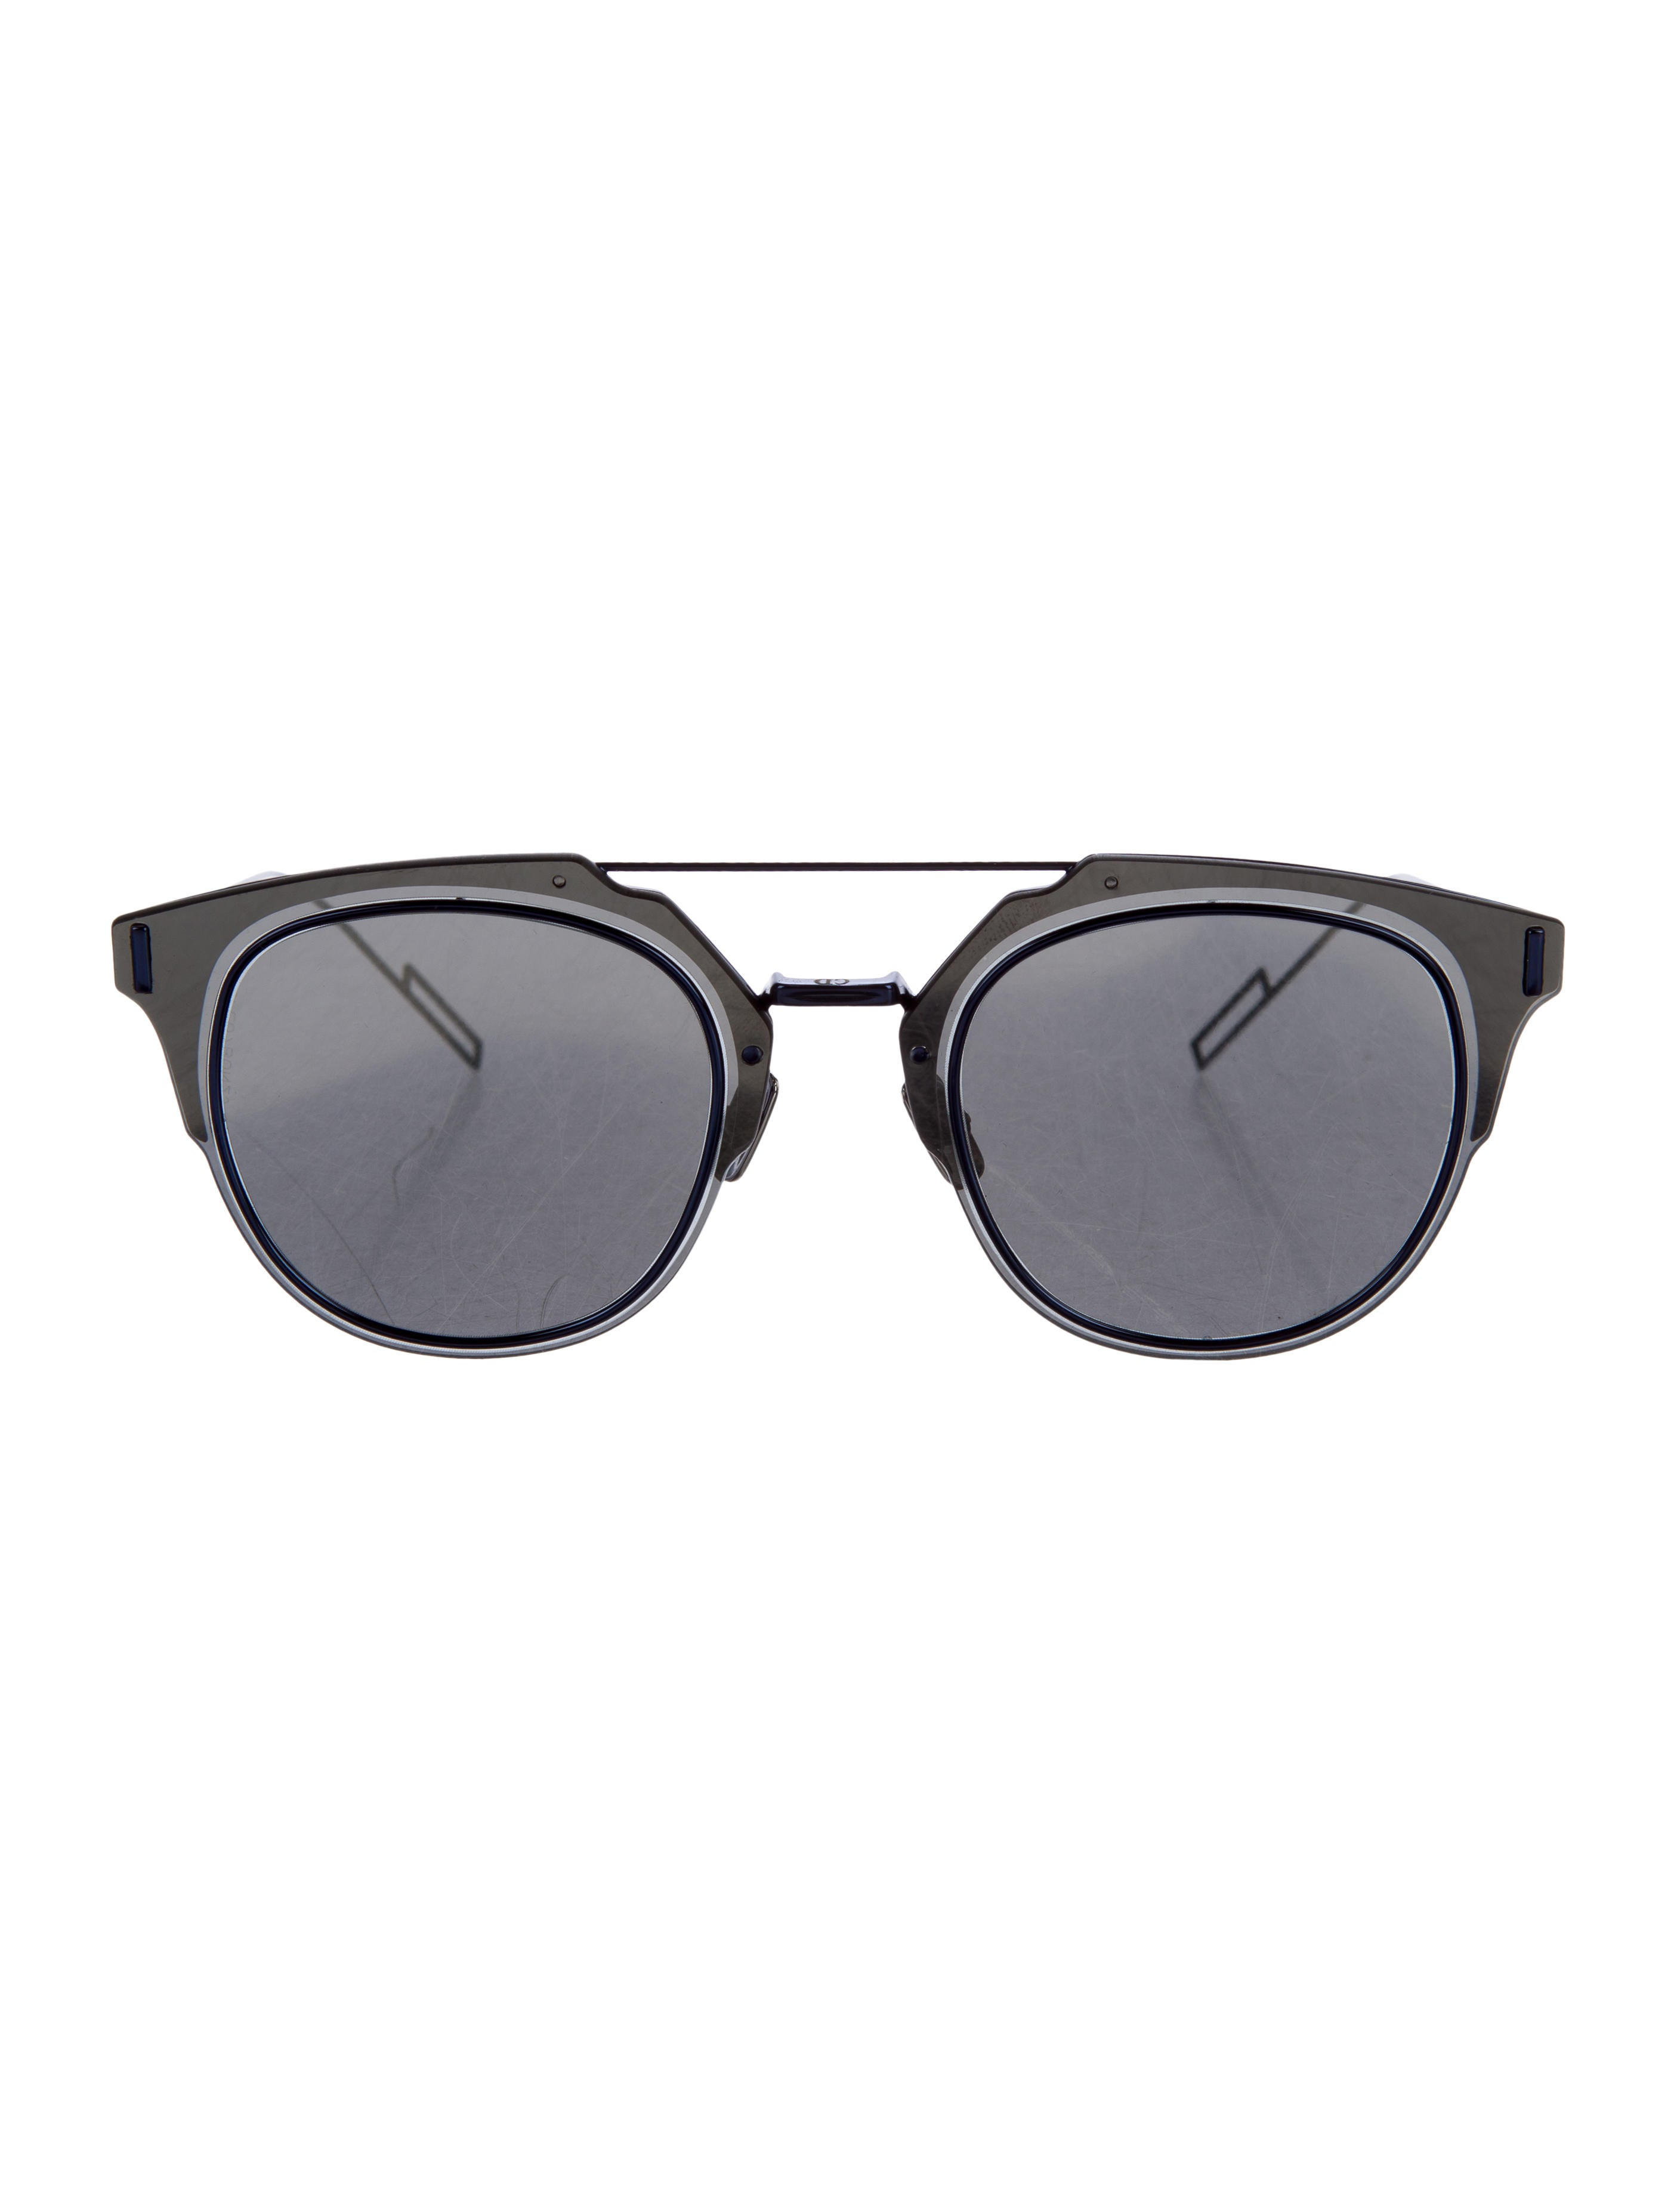 ad6d4caa010ed Dior Homme Composit 1.0 Pantos Sunglasses w  Tags - Accessories - HMM22515